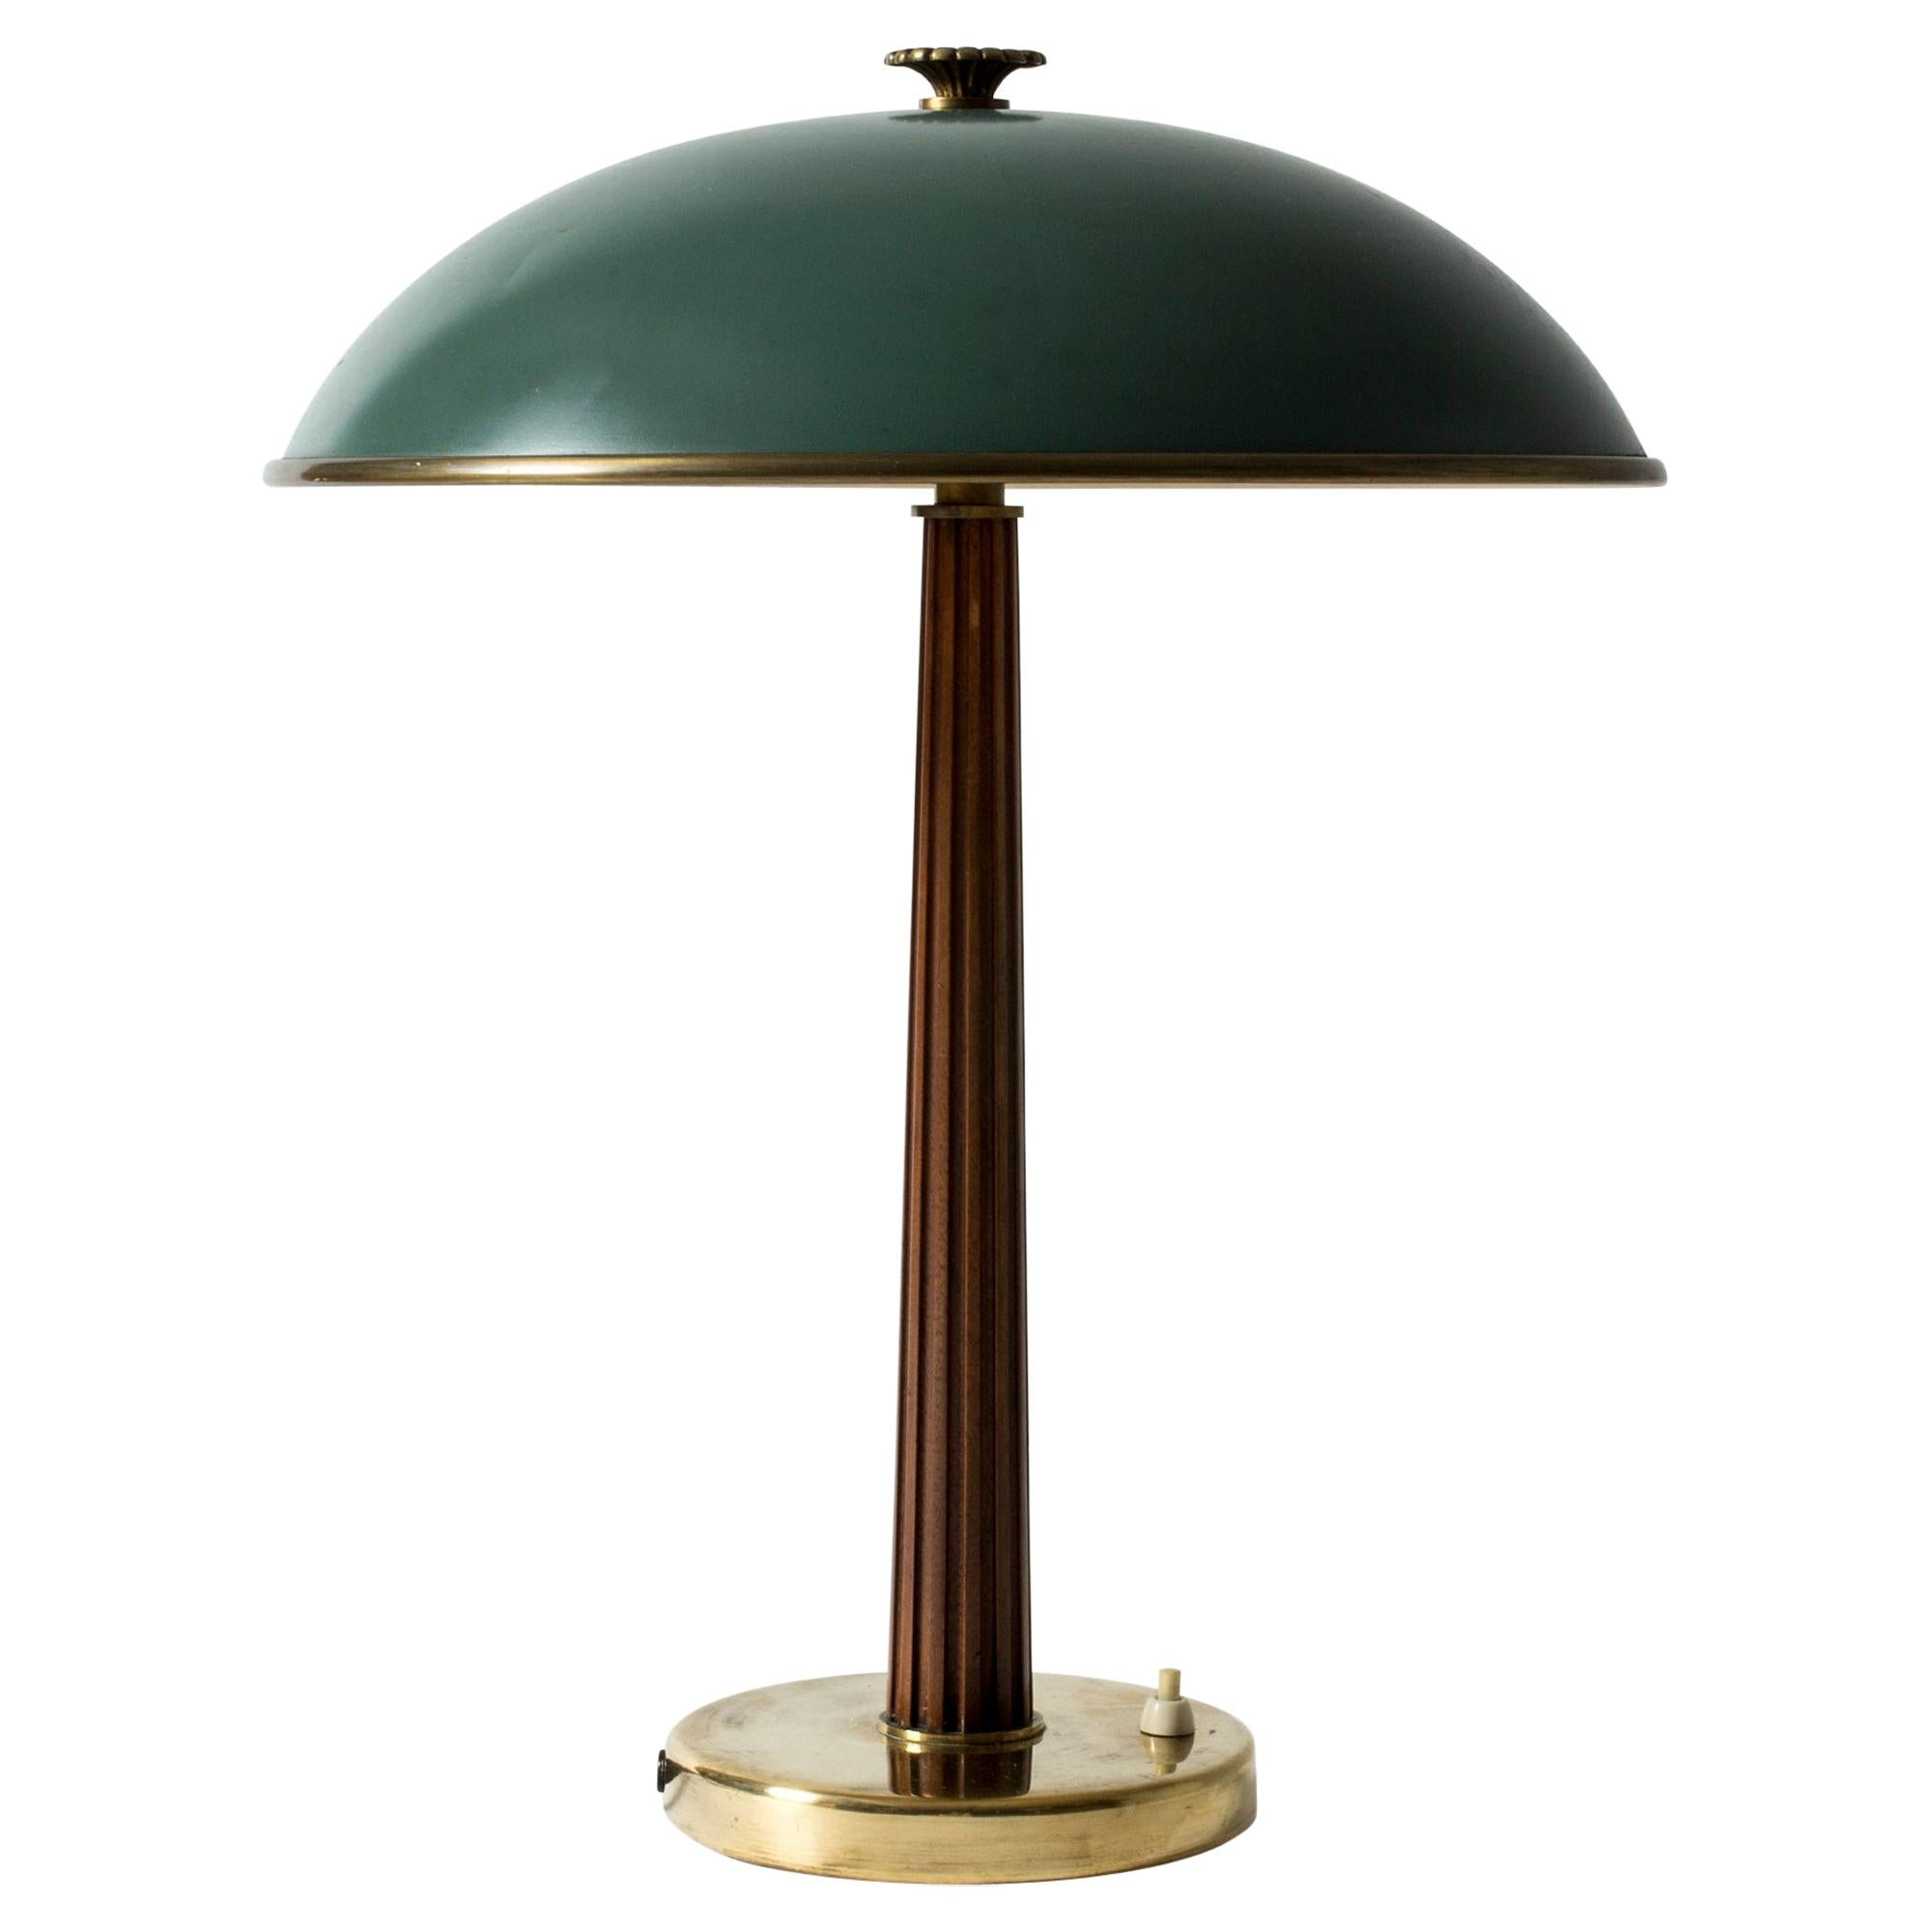 Brass, Mahogany and Lacquer Table Lamp from Nordiska Kompaniet, Sweden, 1940s